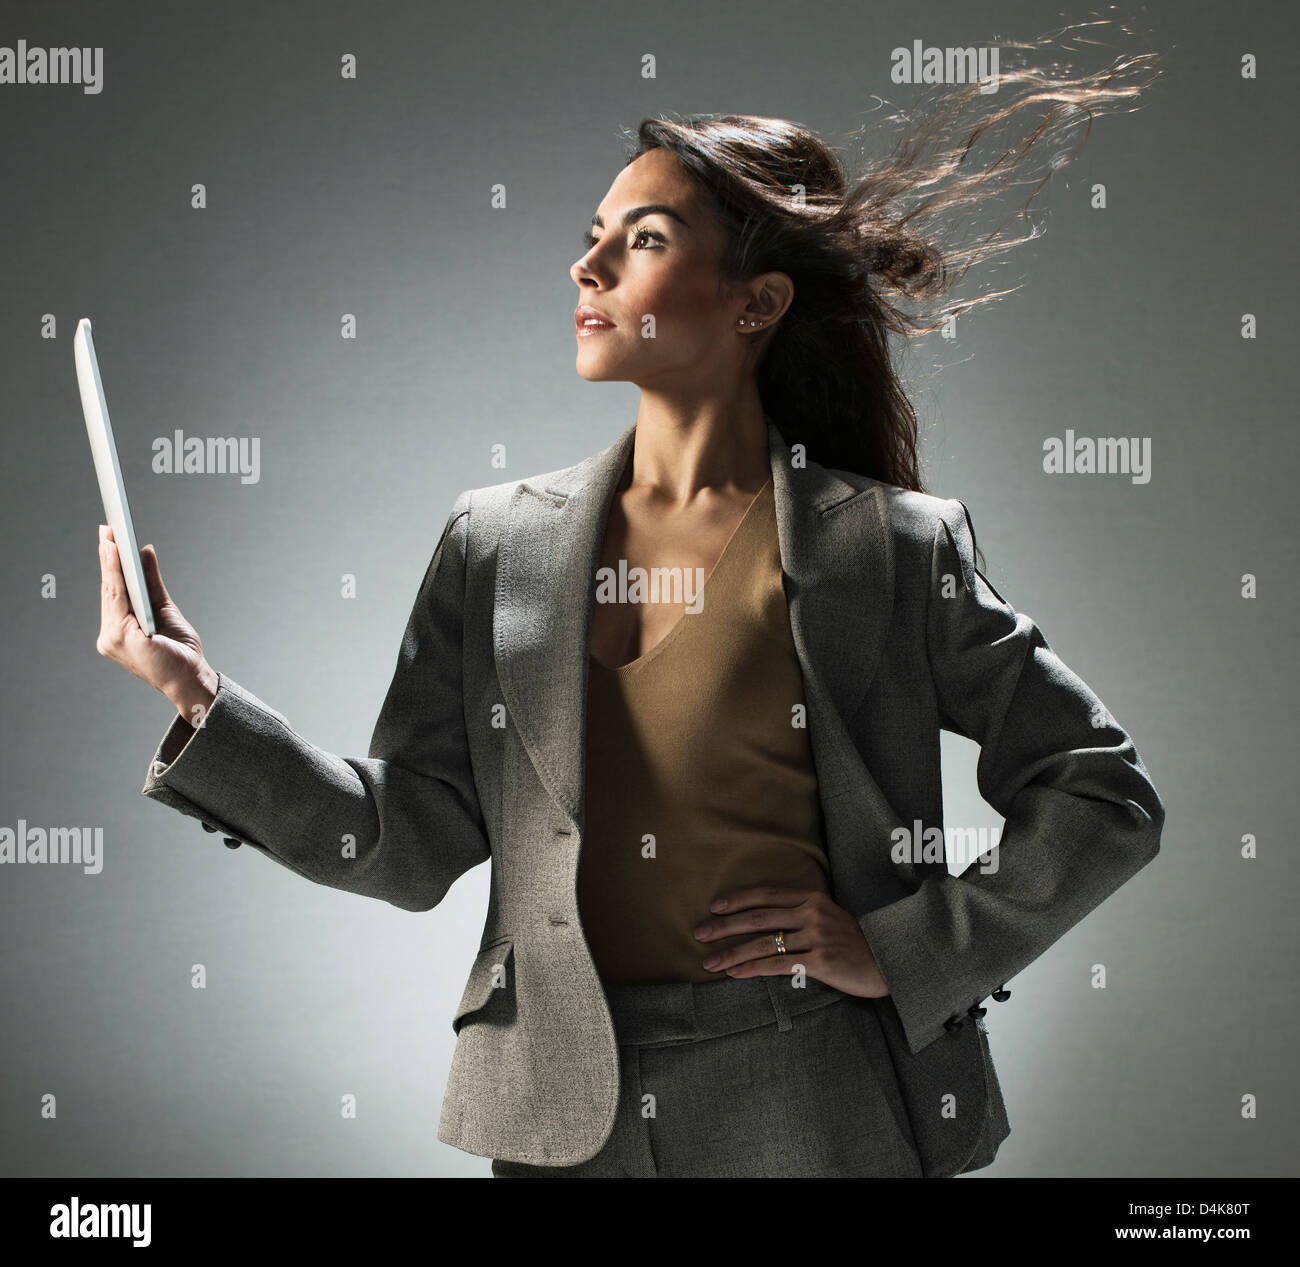 Businesswoman holding tablet computer Photo Stock